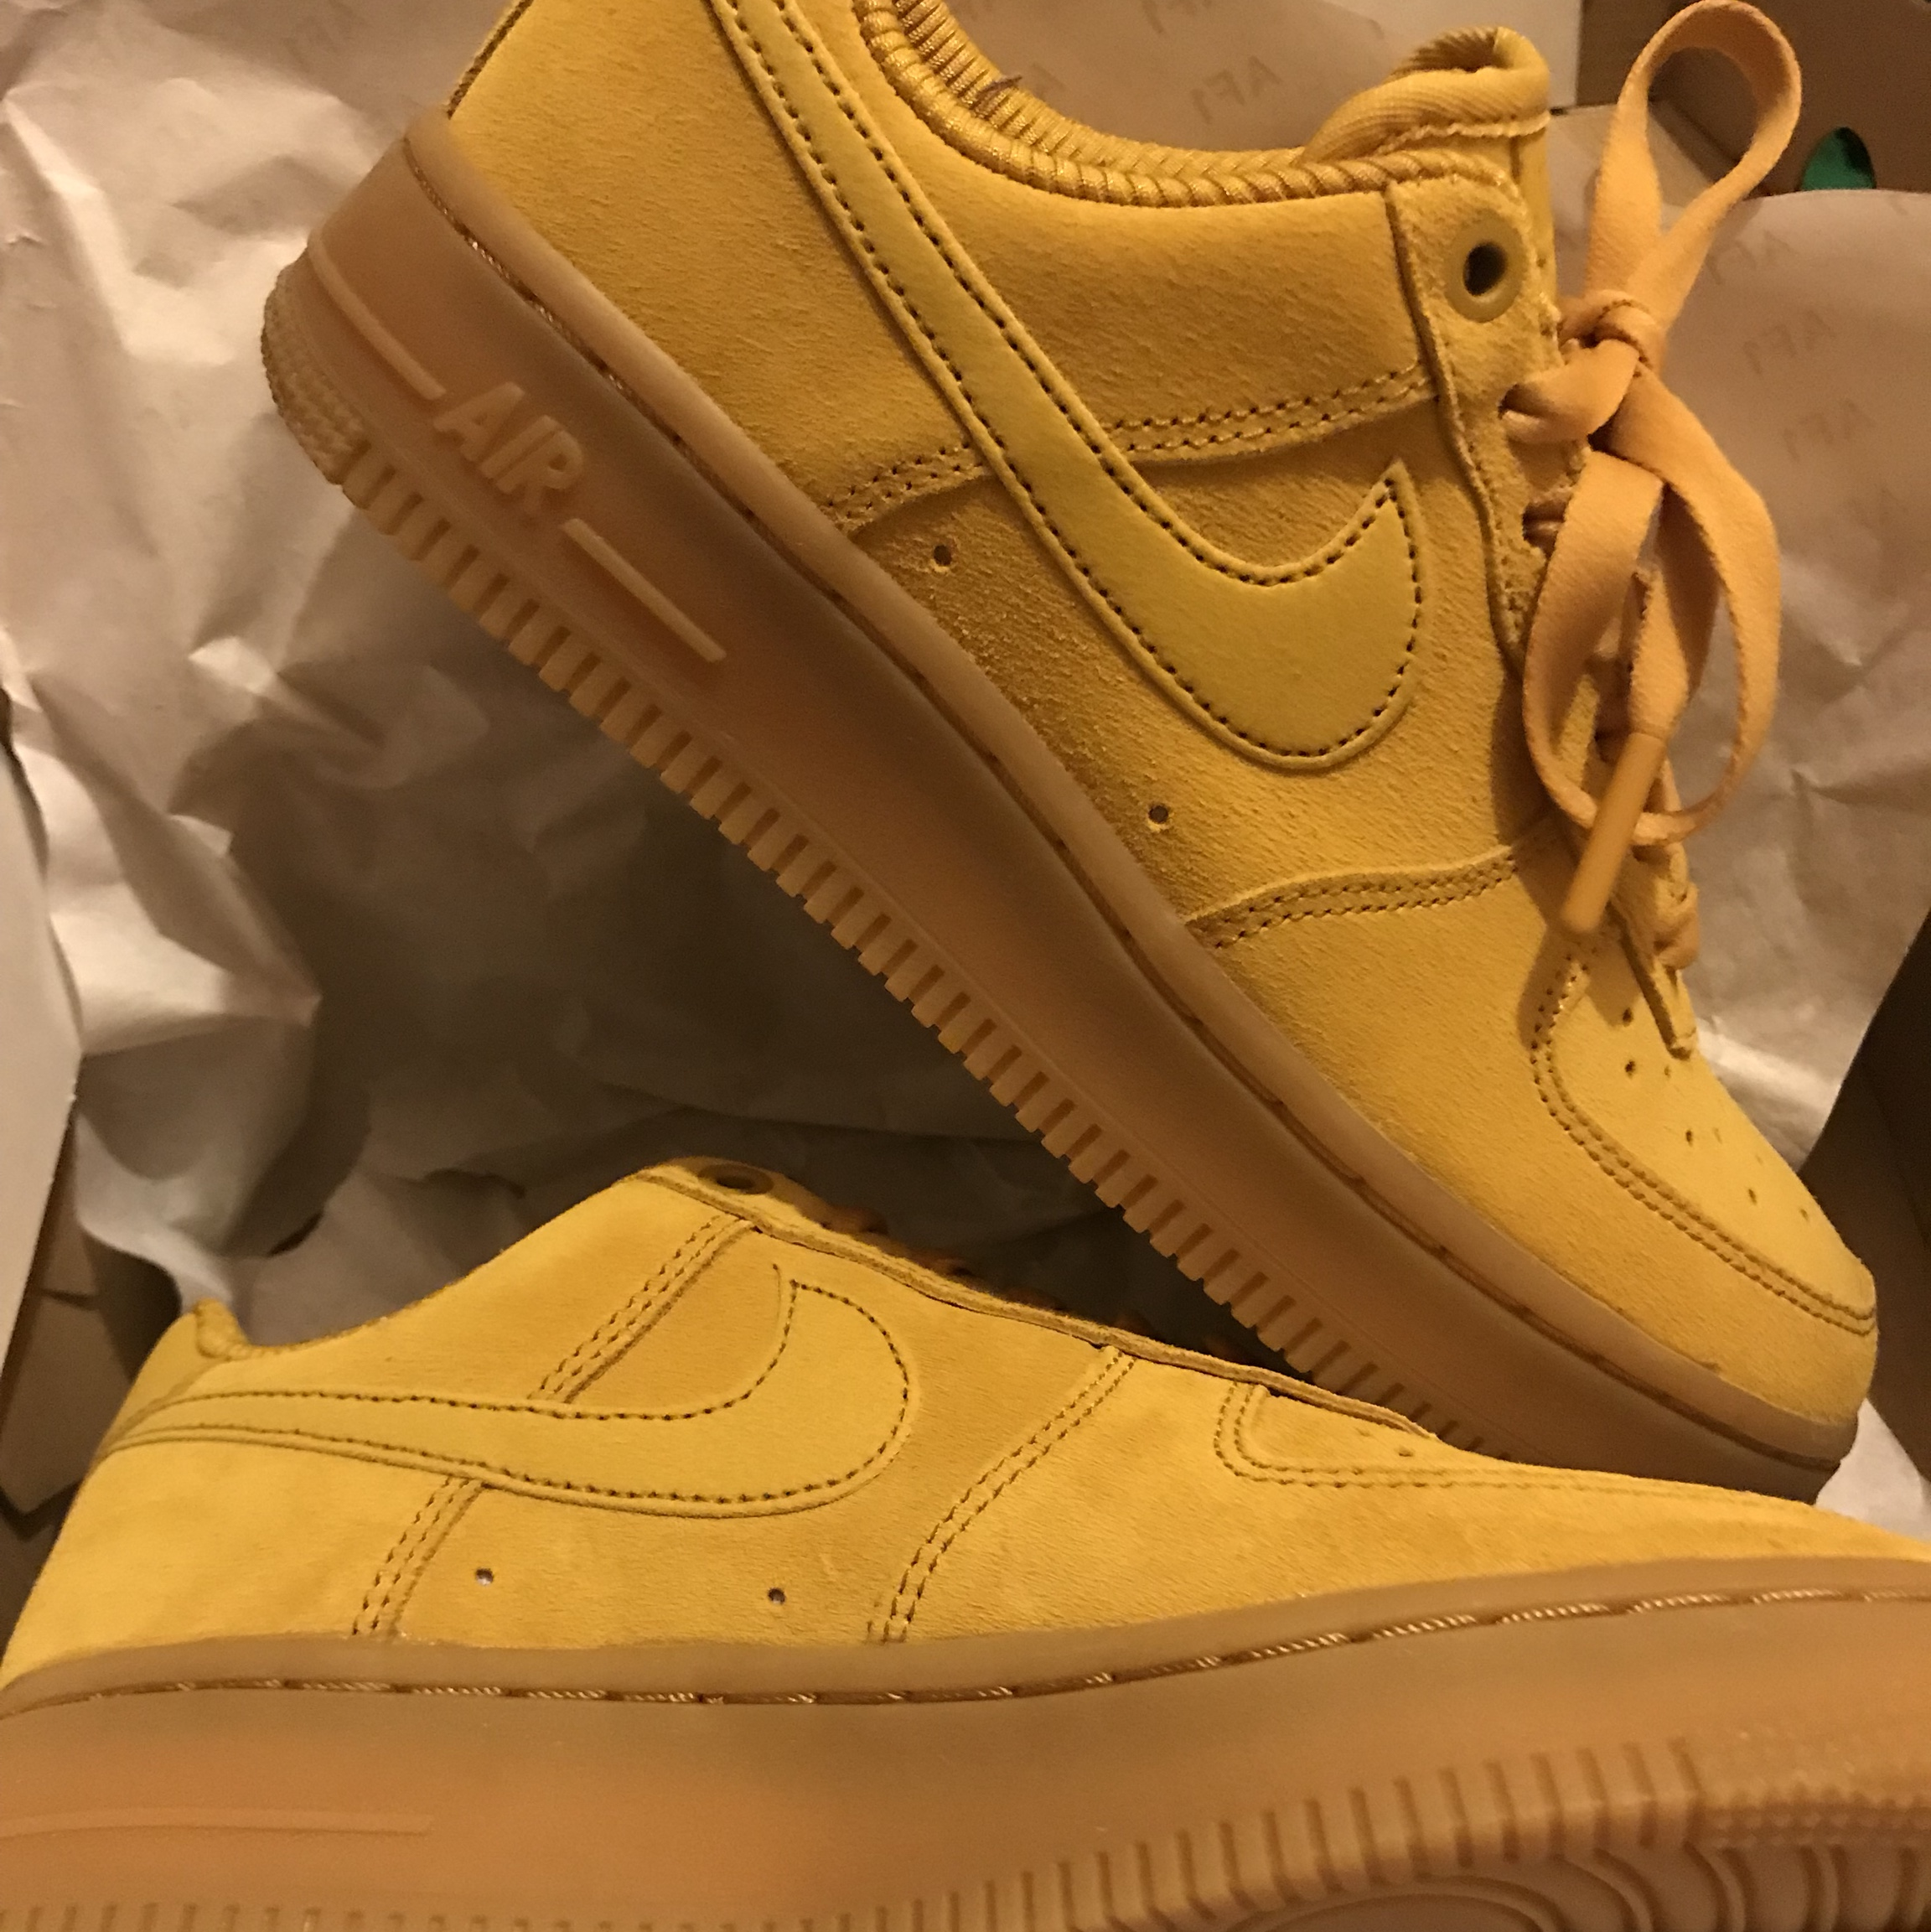 NIKE AIR FORCE 1 mustard yellow suede